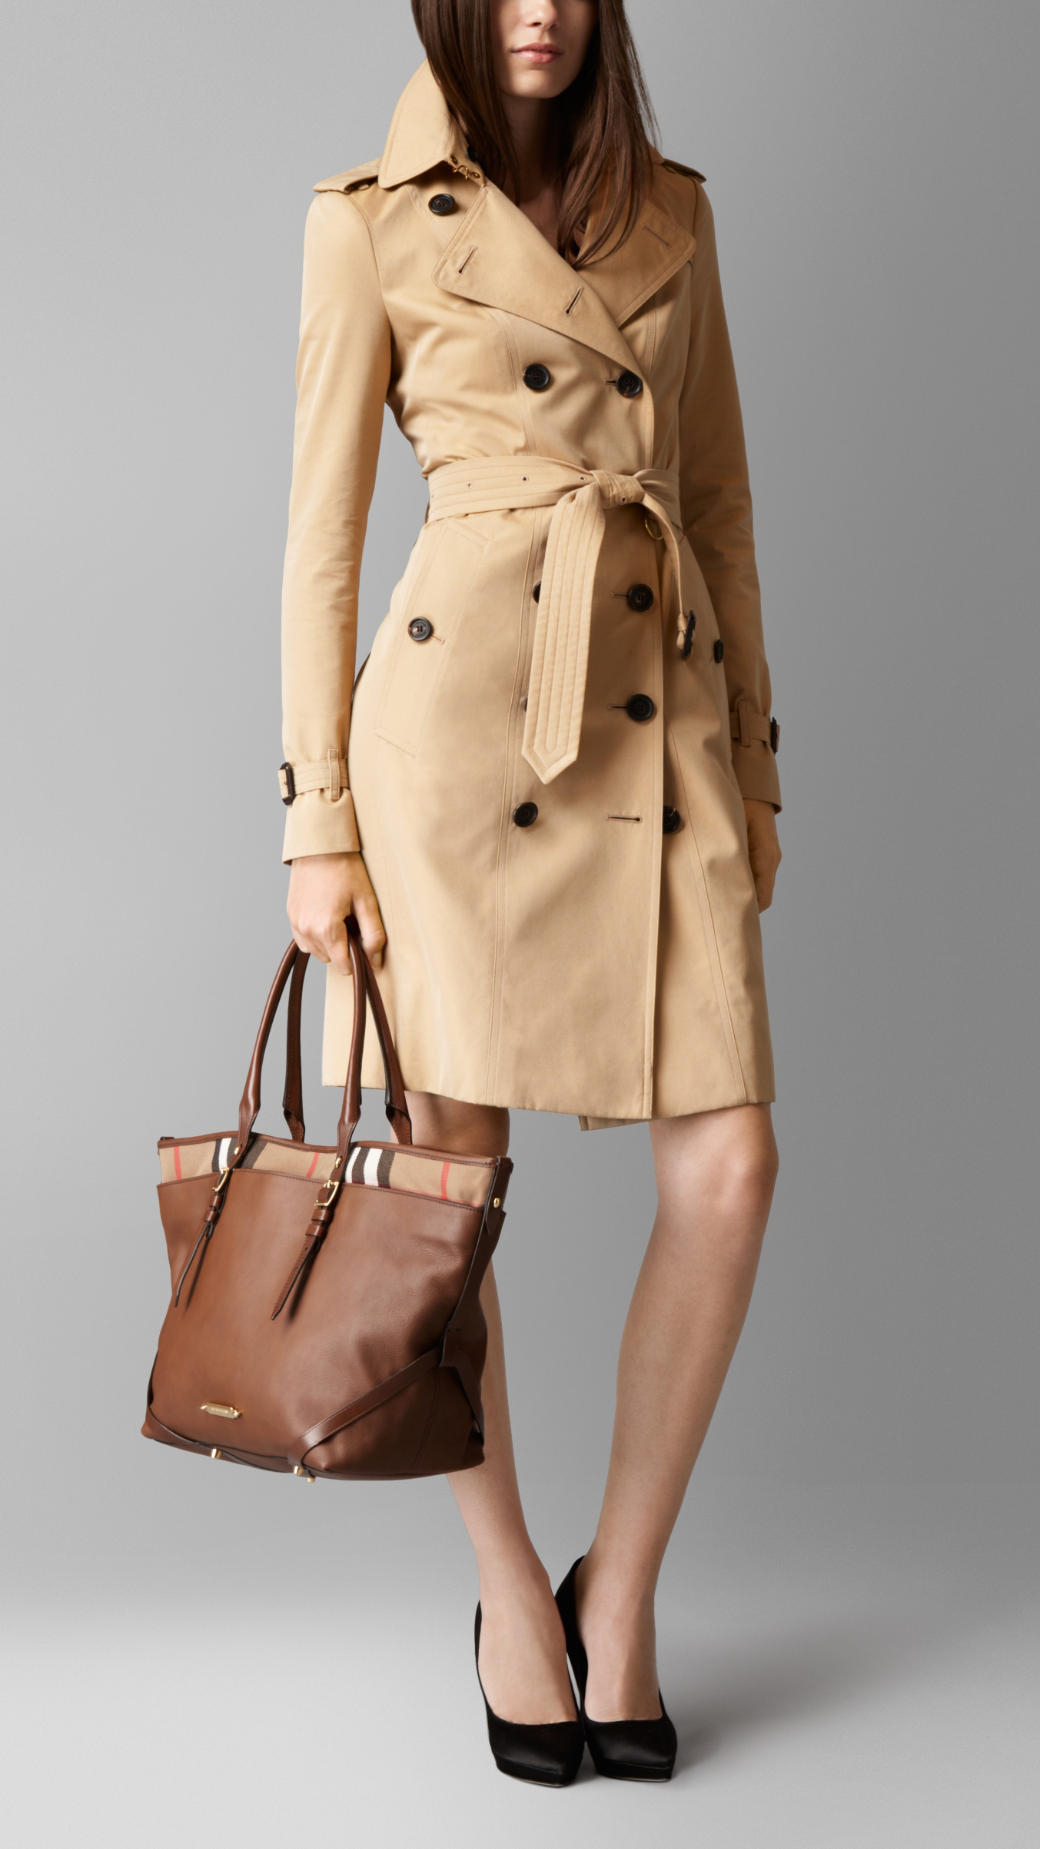 560de22ed306 Lyst - Burberry Medium Leather And House Check Tote Bag in Brown